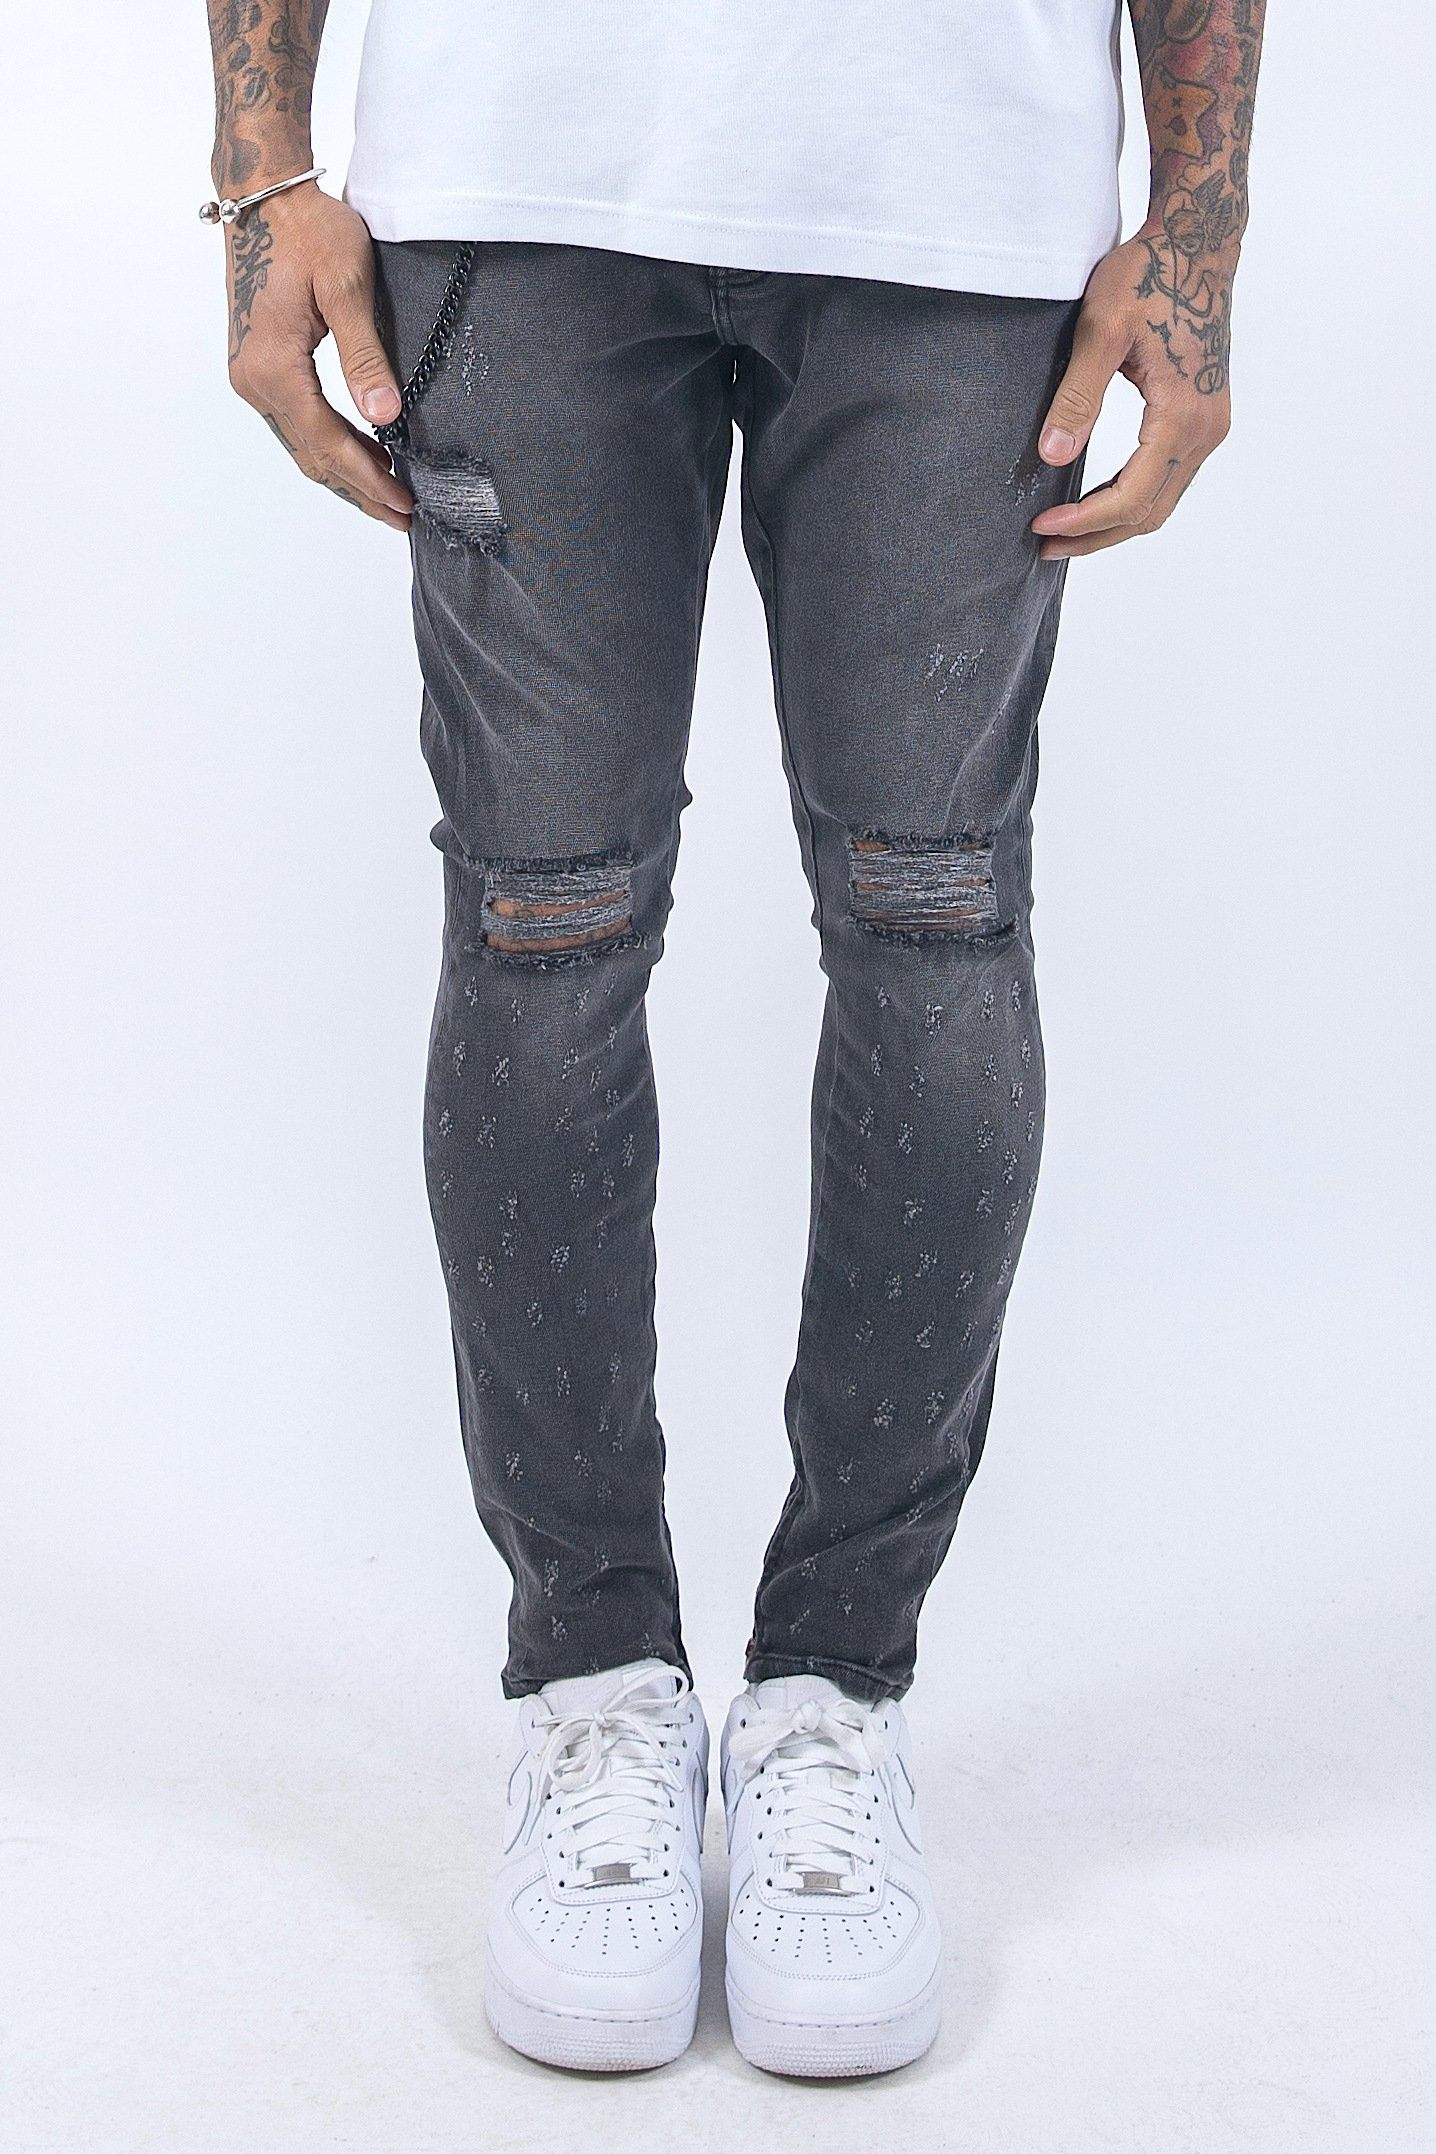 Chayne Destroyed Jeans Grey - PEGADOR - Dominate the Hype